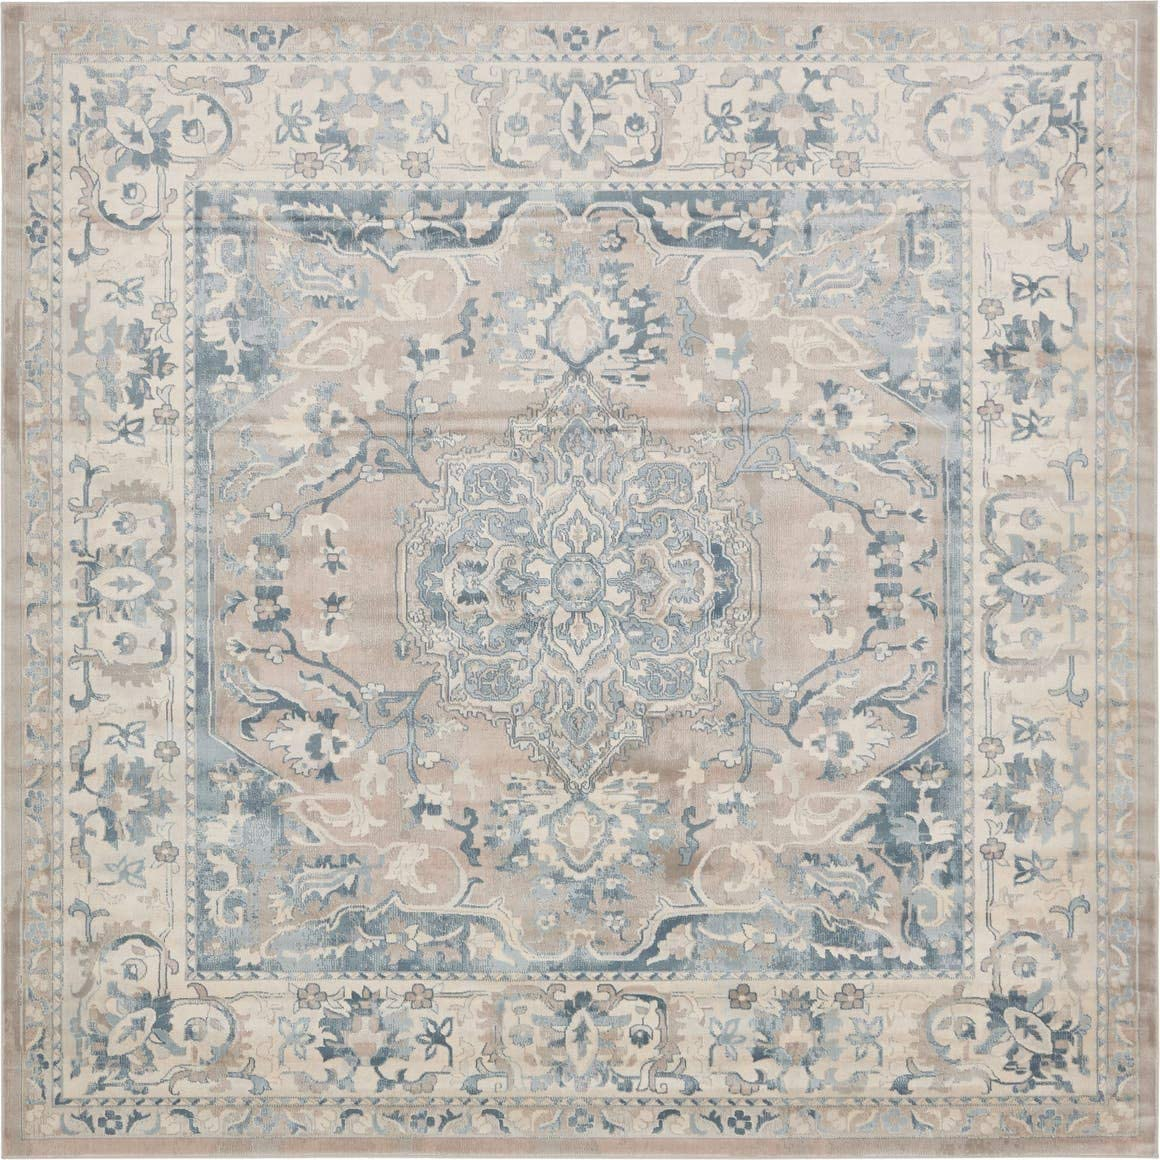 Unique Loom Narenj Collection Classic Traditional Medallion Textured Navy Blue Area Rug 5 0 x 8 0